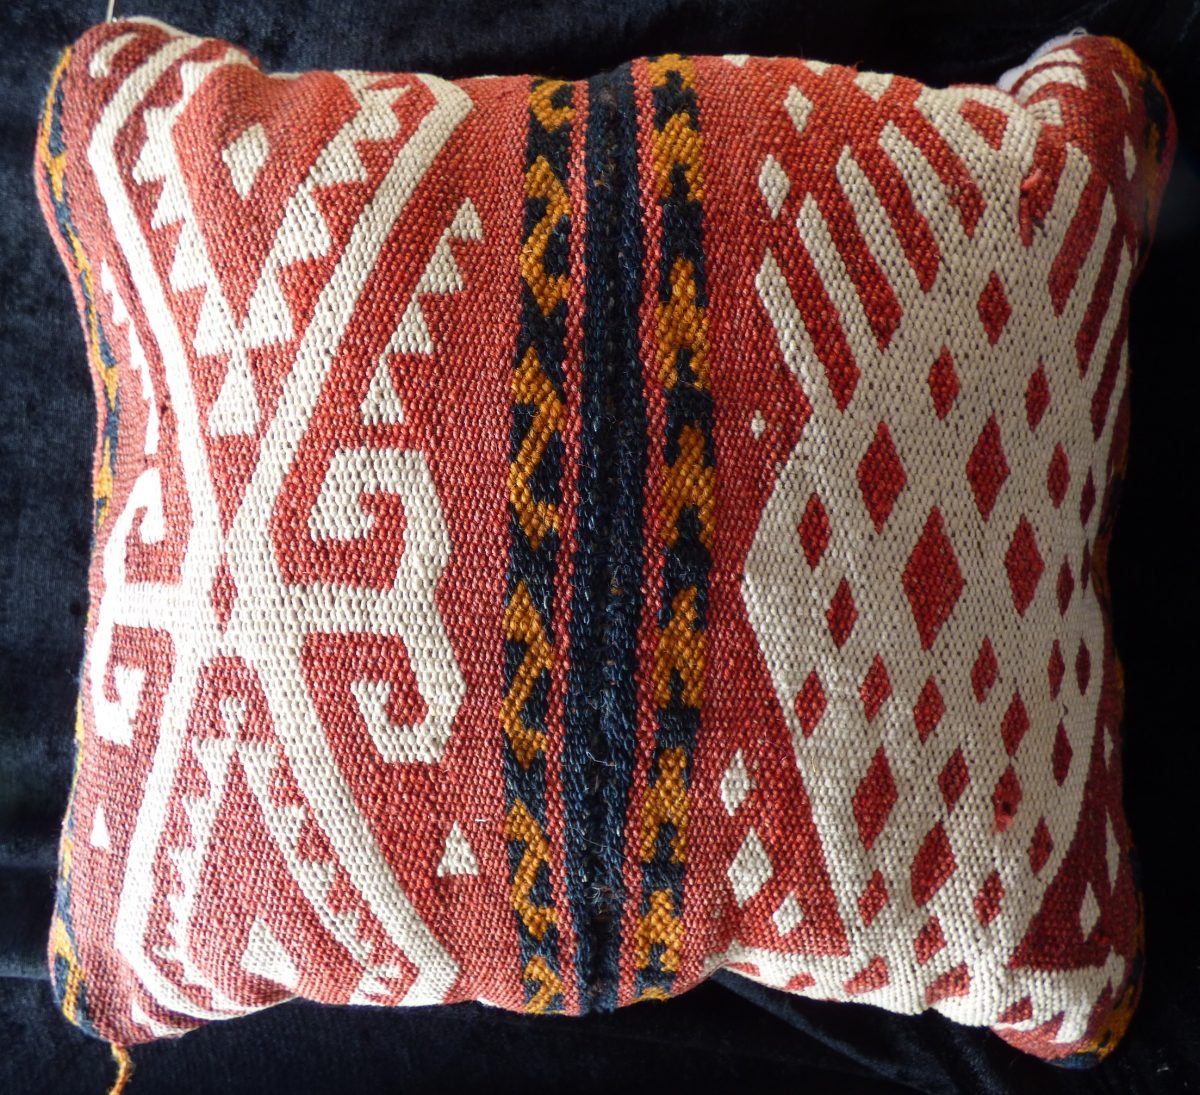 Small Uzbek Kilim Flatweave Gajari Cushion